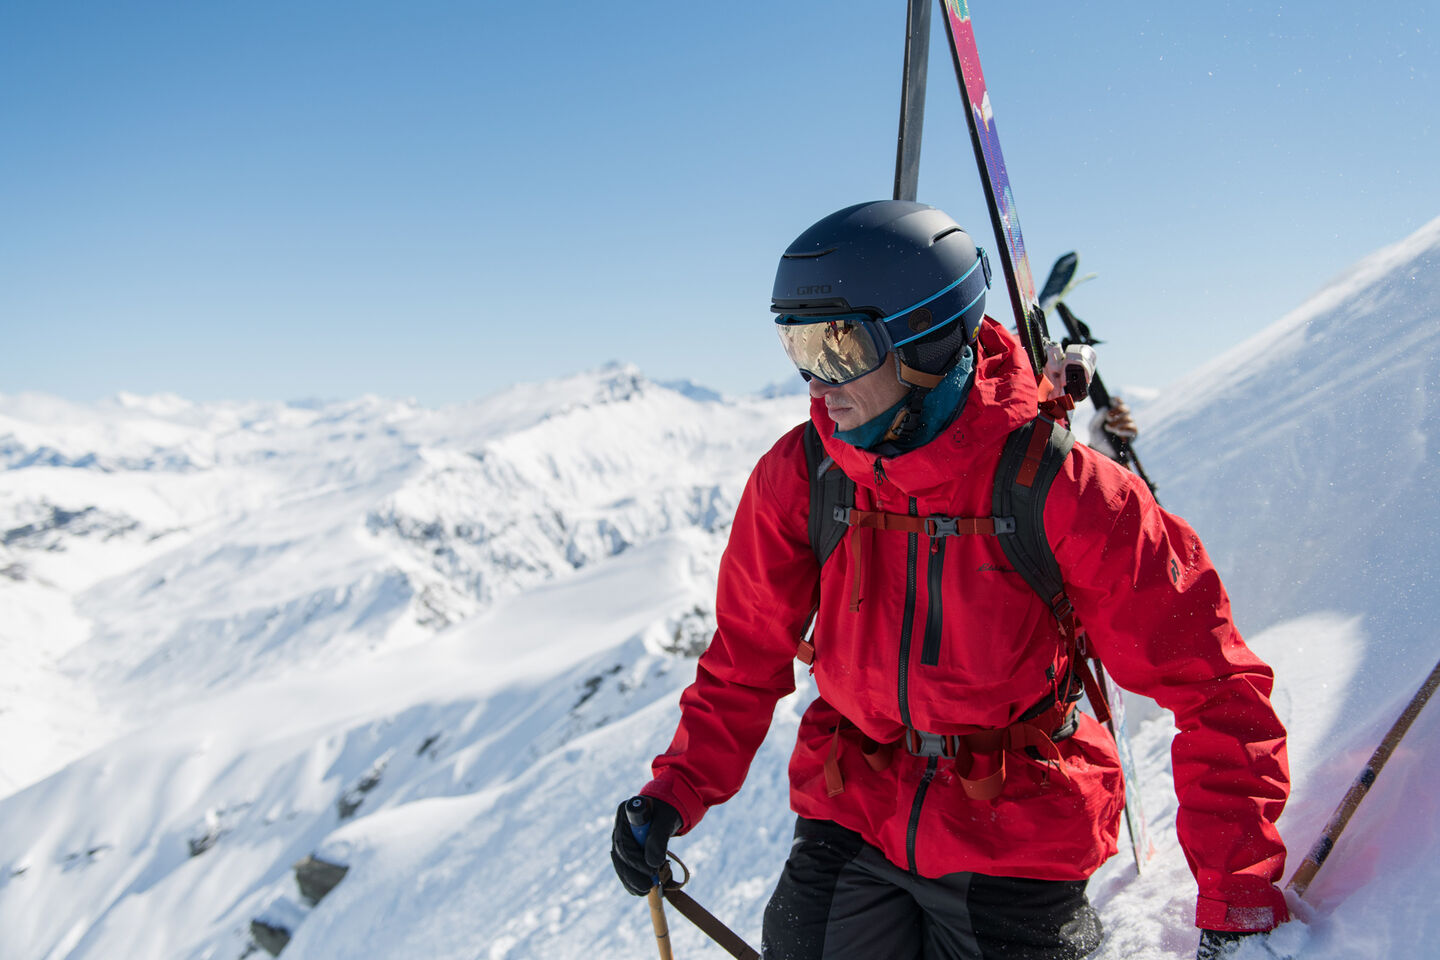 Skier ready for another amazing decent, eying up his line through Giro goggles